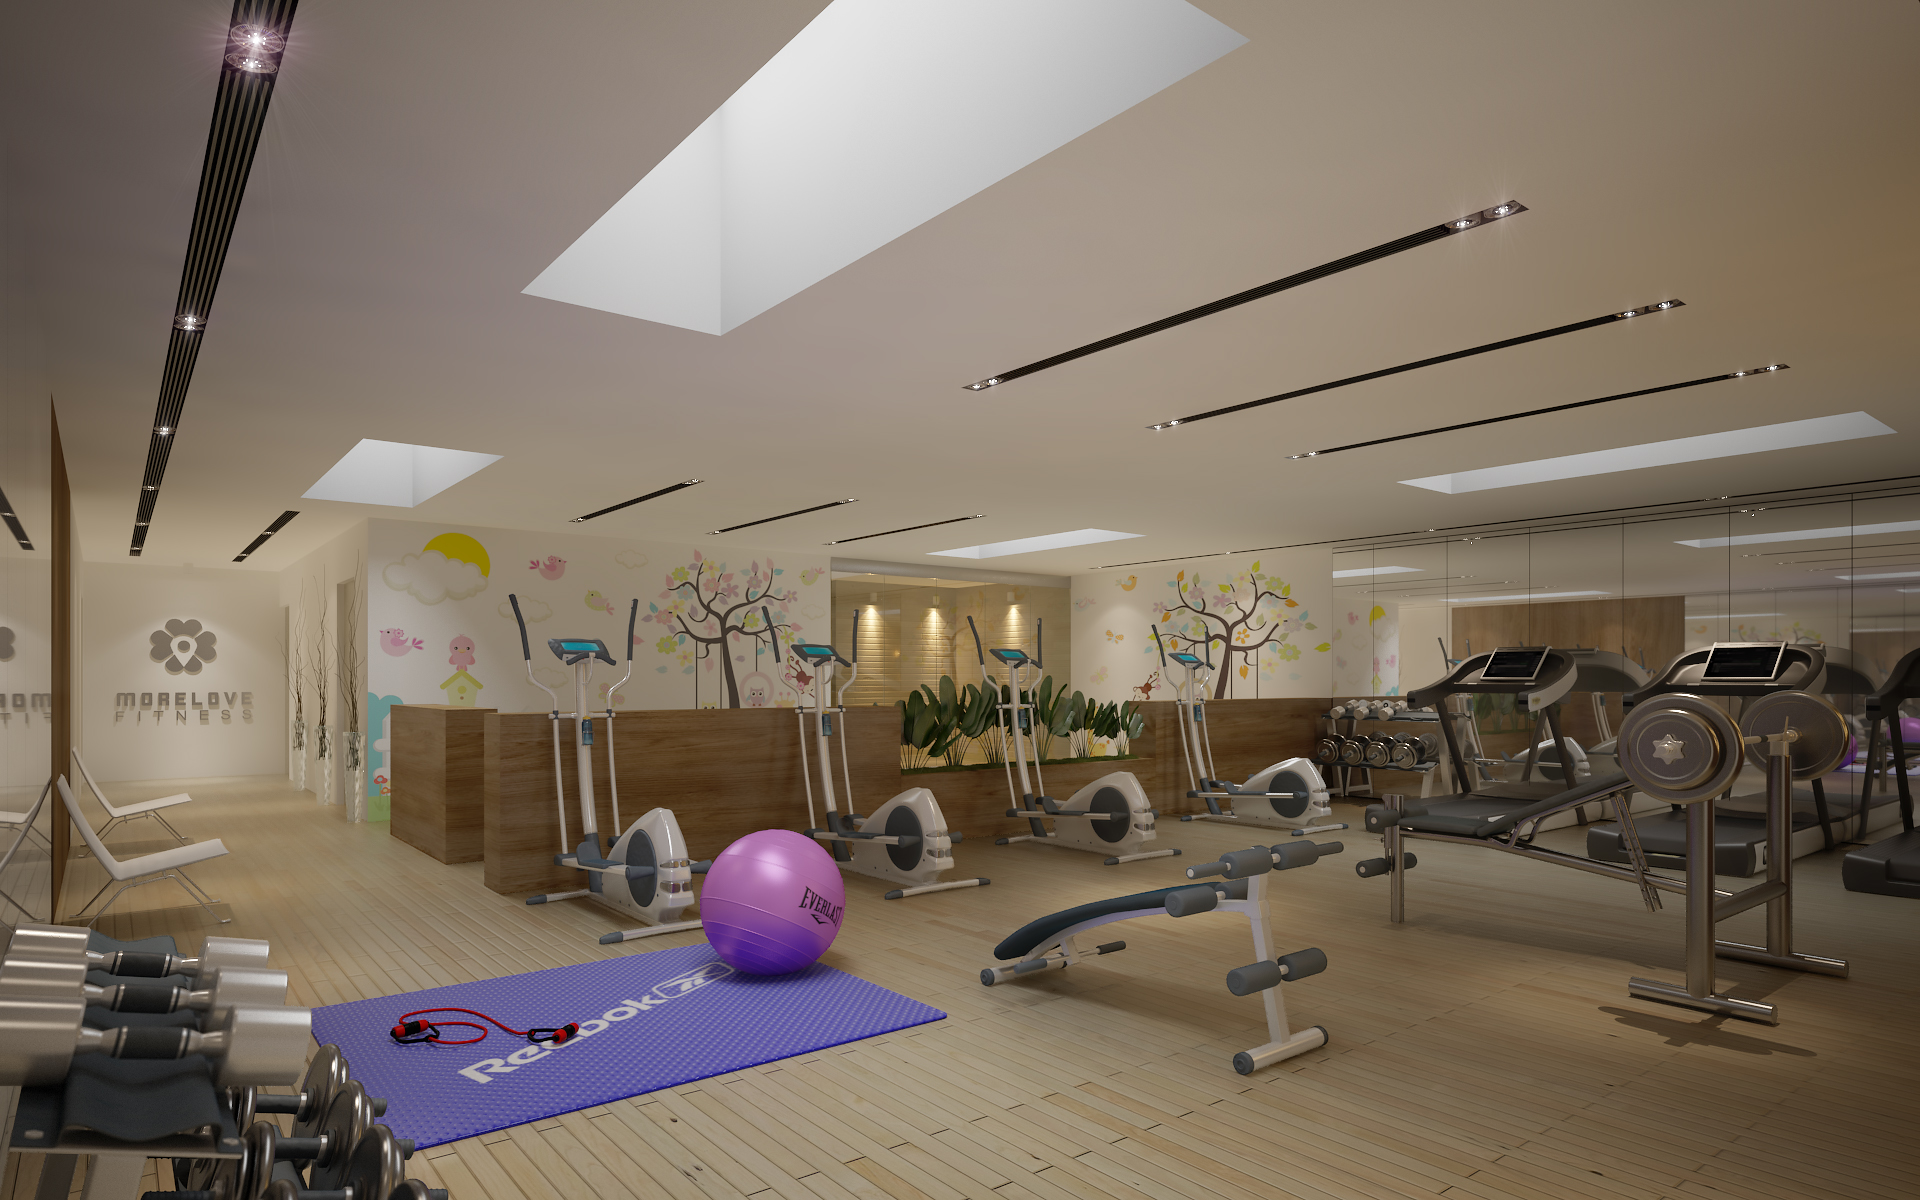 gym fitness interior design idea with kids area 3d model 3ds max dwg fbx c4d obj other 223682